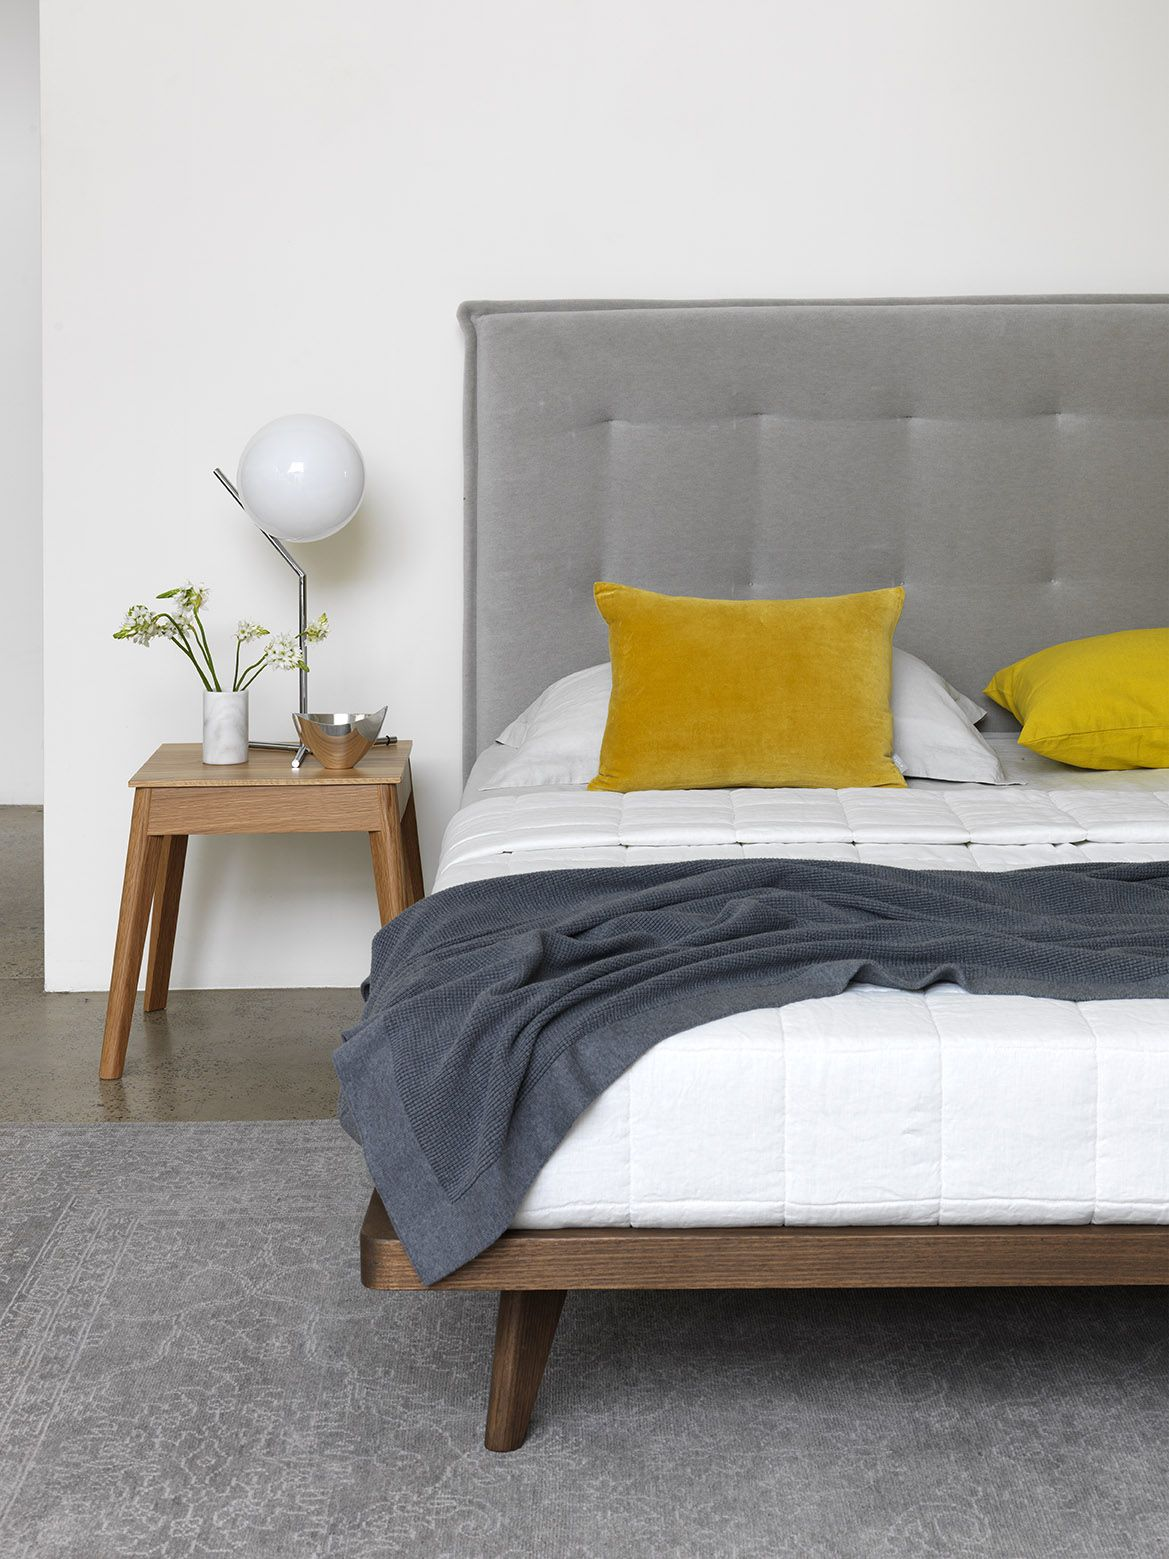 The Arthur G Austin Bed And Carson Side Table Upholstered Bedhead